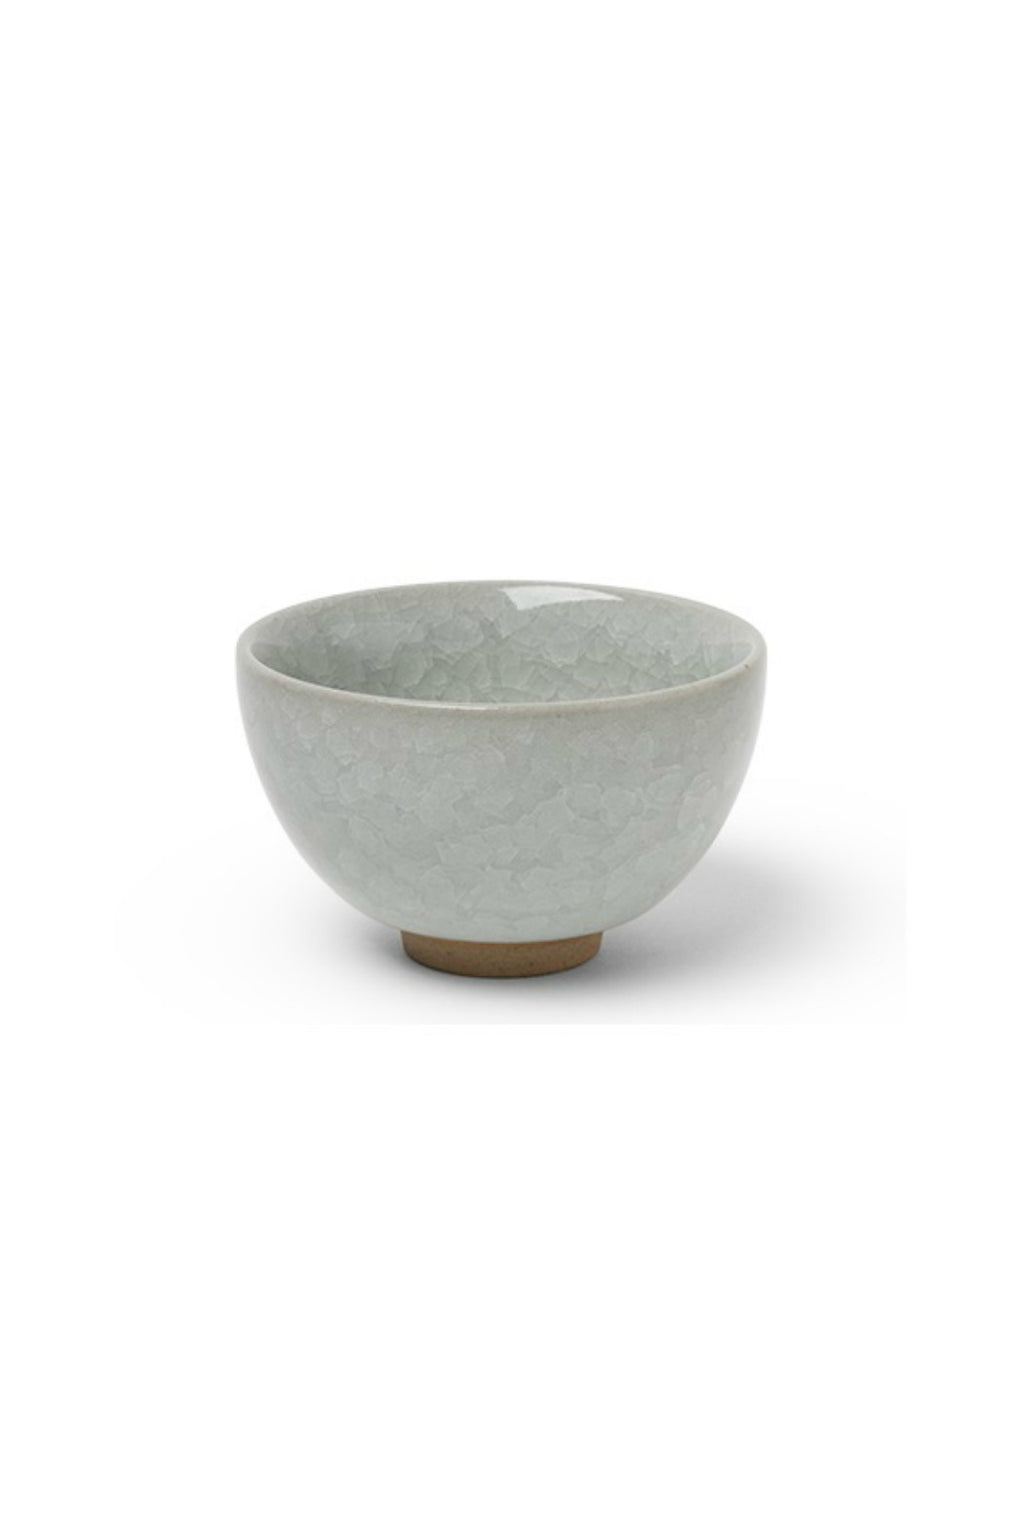 Miya Sakura Crackle Teacup in White